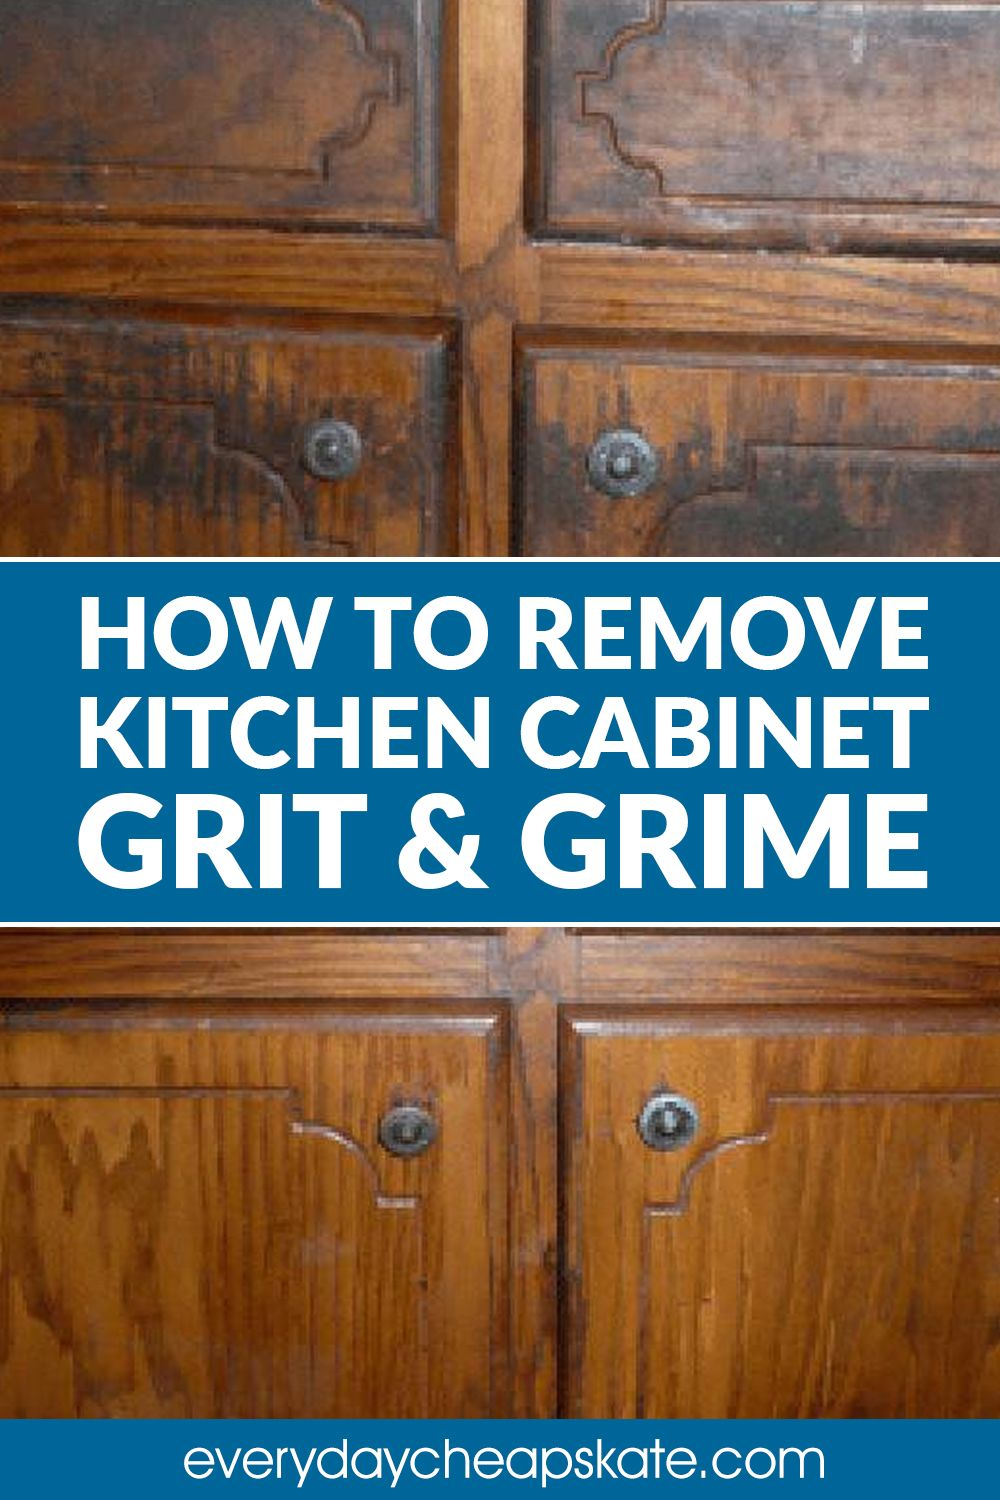 How To Remove Kitchen Cabinet Grit And Grime In 2020 Cleaning Cabinets How To Remove Kitchen Cabinets Kitchen Cabinets